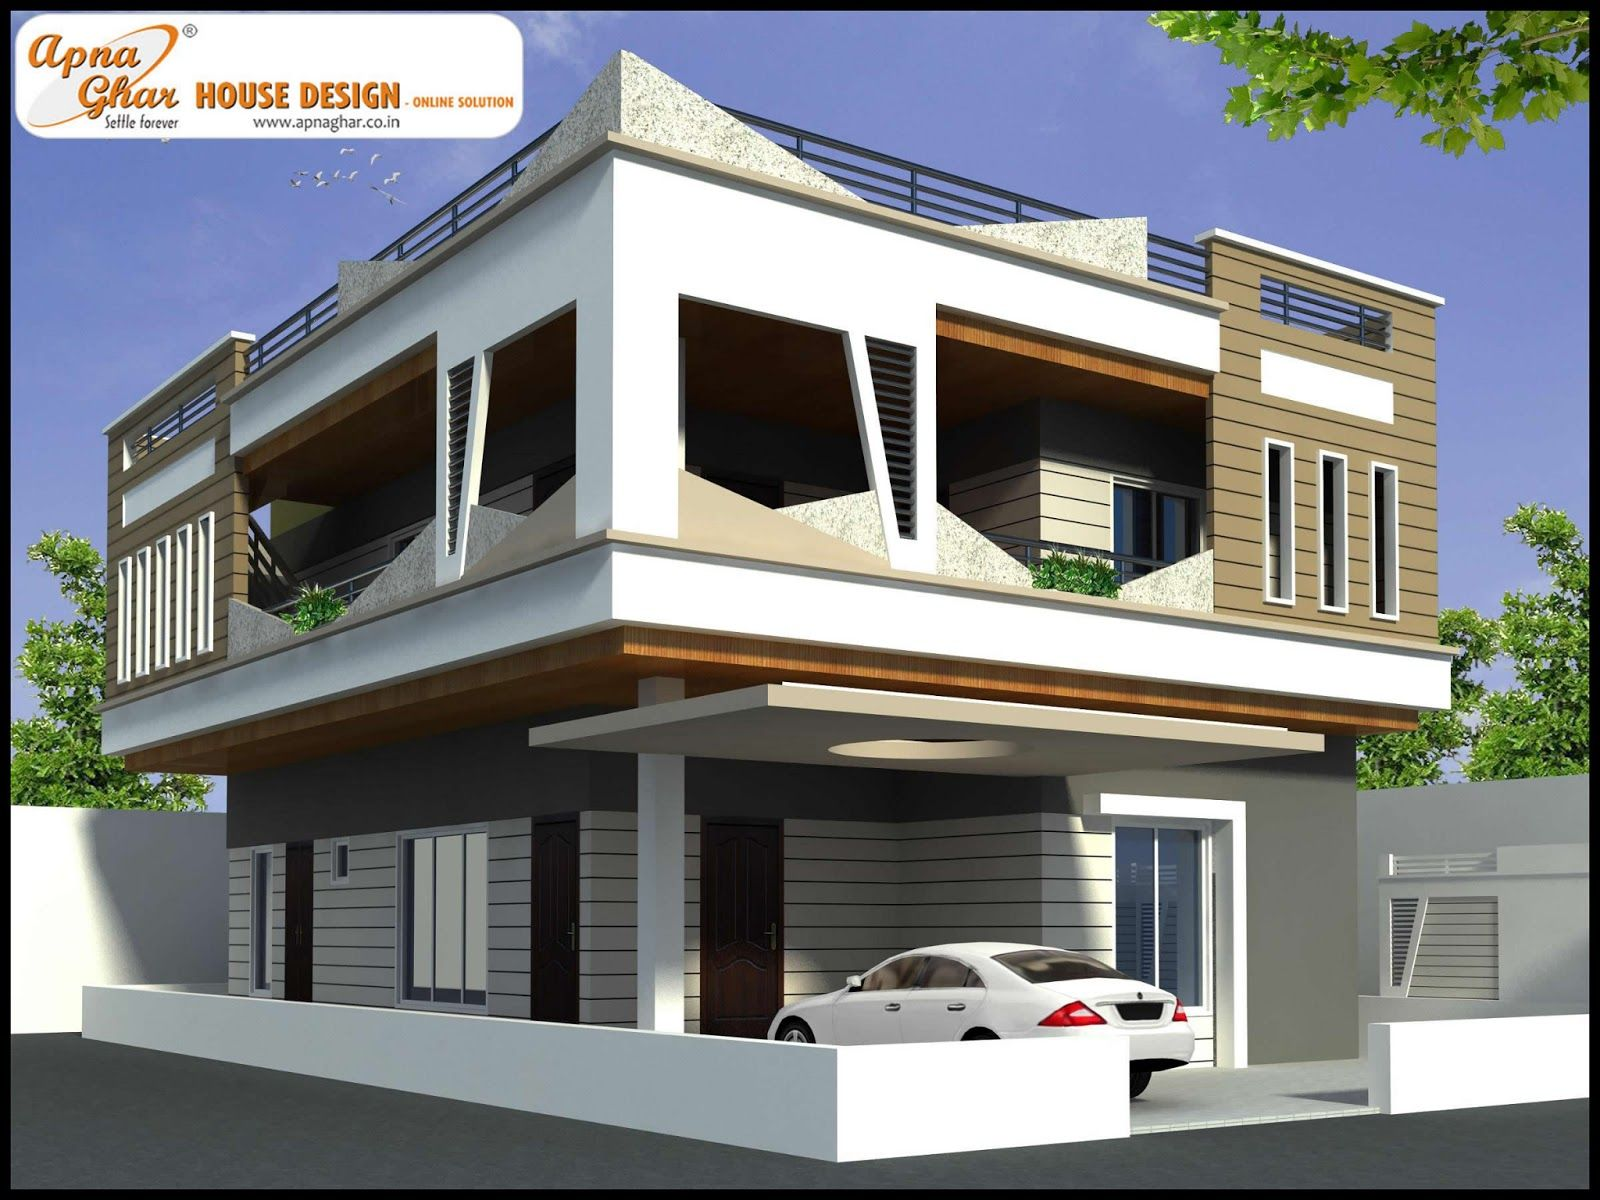 3 Bedroom Modern House Design Duplex House Design  Apnaghar House Design  Page 3  House